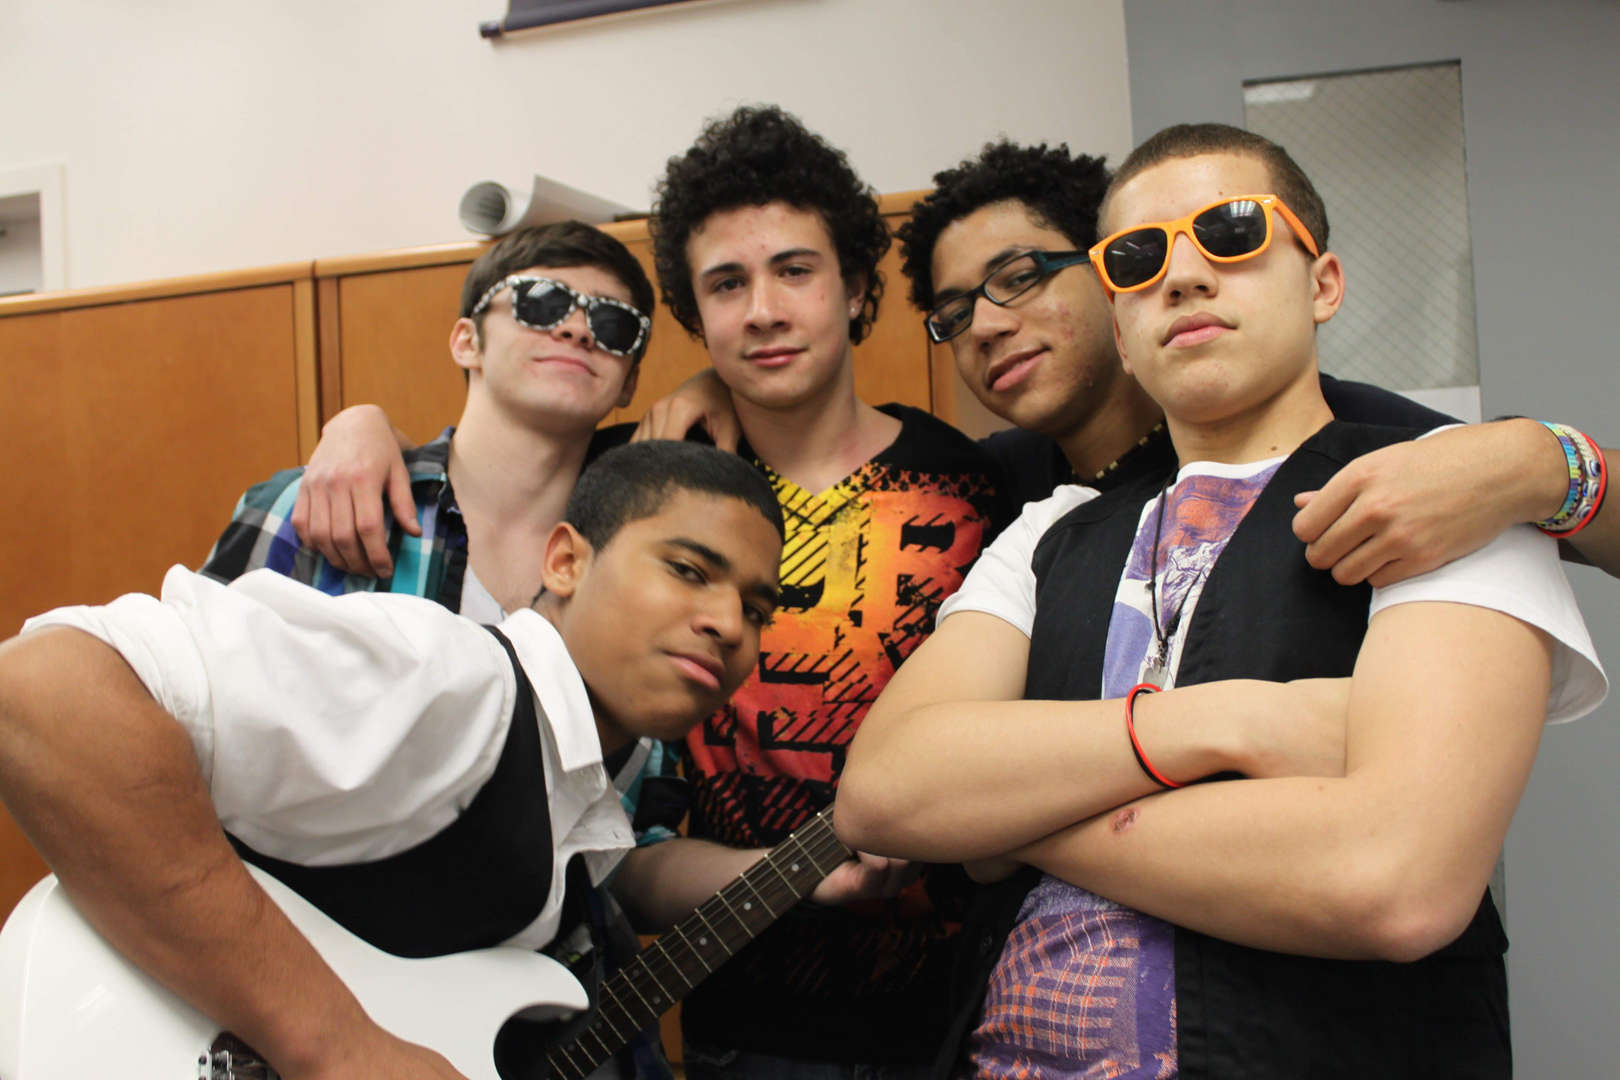 A group of students in the hall, two wearing sunglasses and one holding a guitar